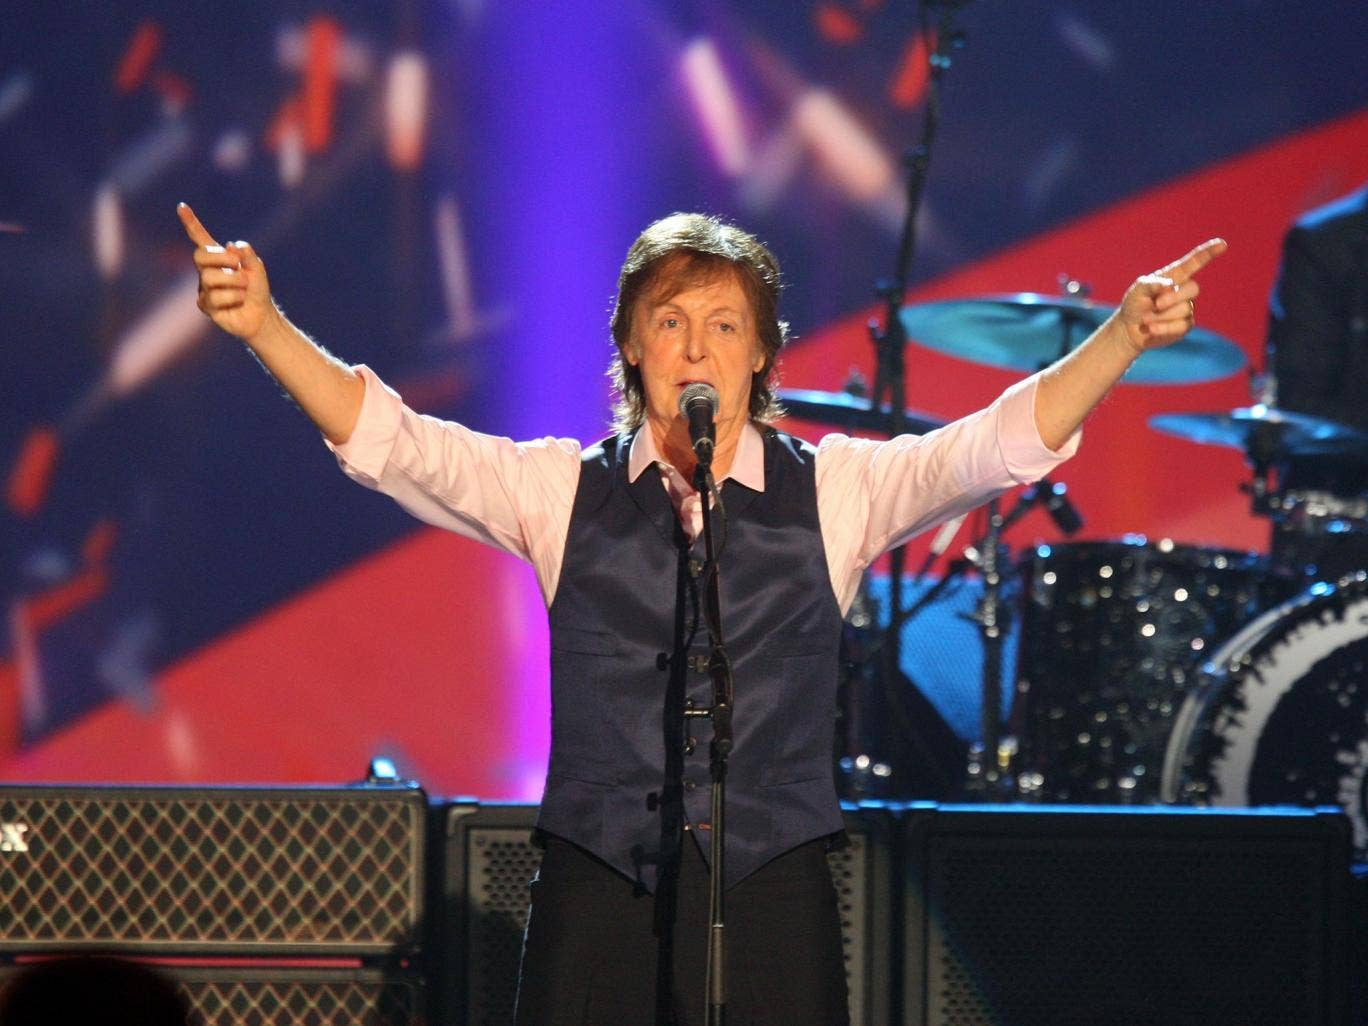 McCartney's Out There Tour was expected to see him perform 58 shows and earn him a cool $105.8 million in ticket sales